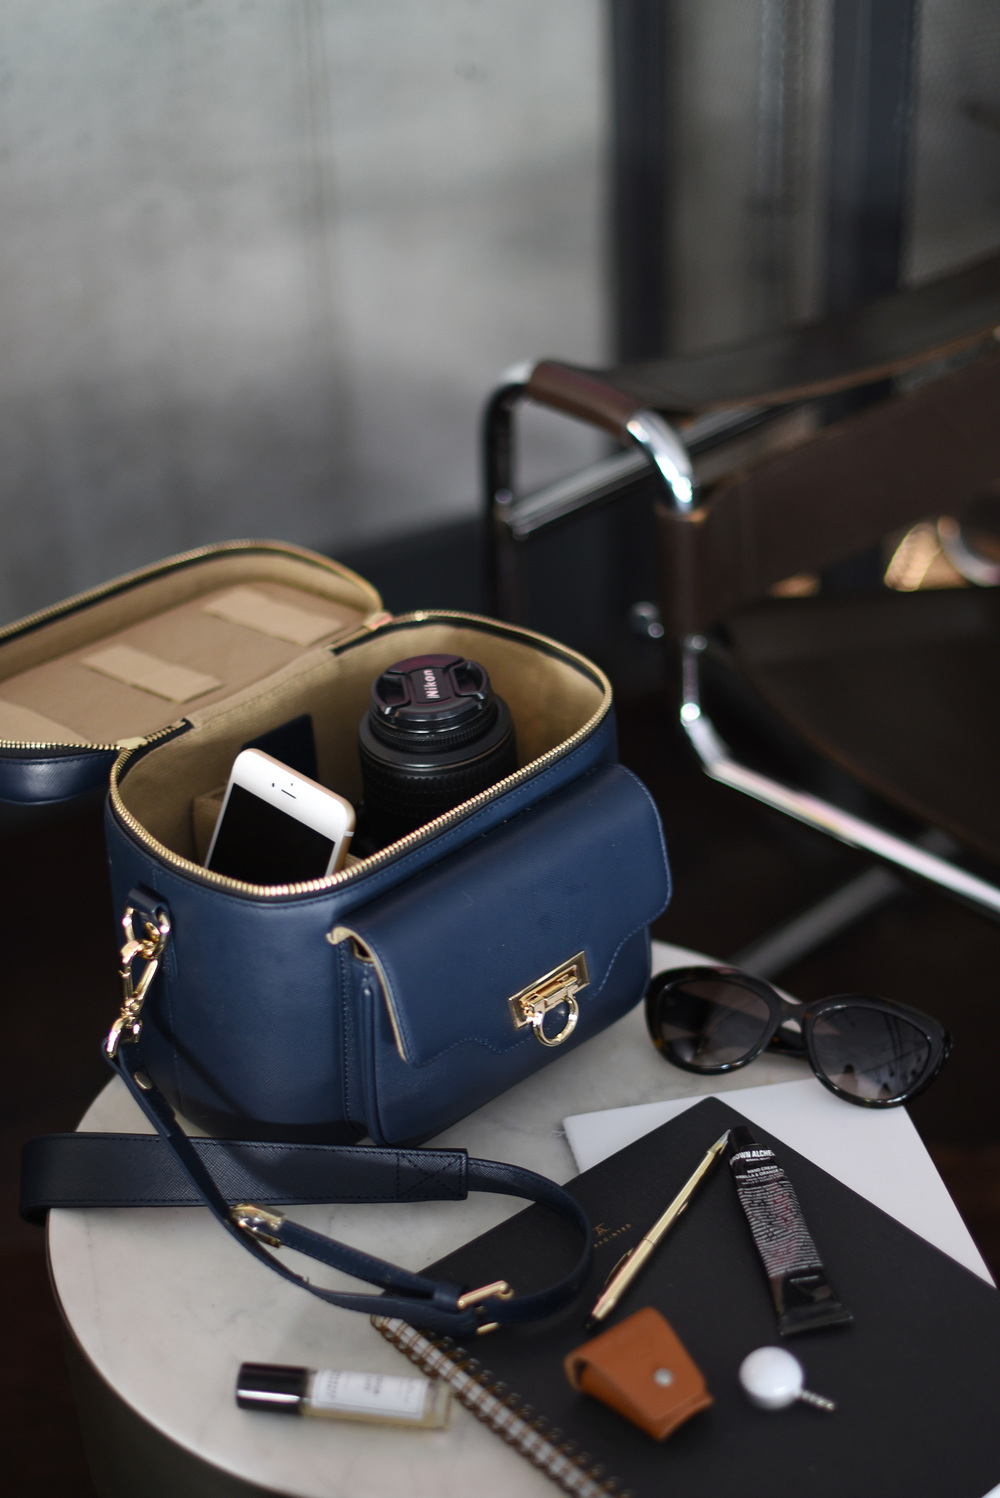 Styled : THEIT camera bag